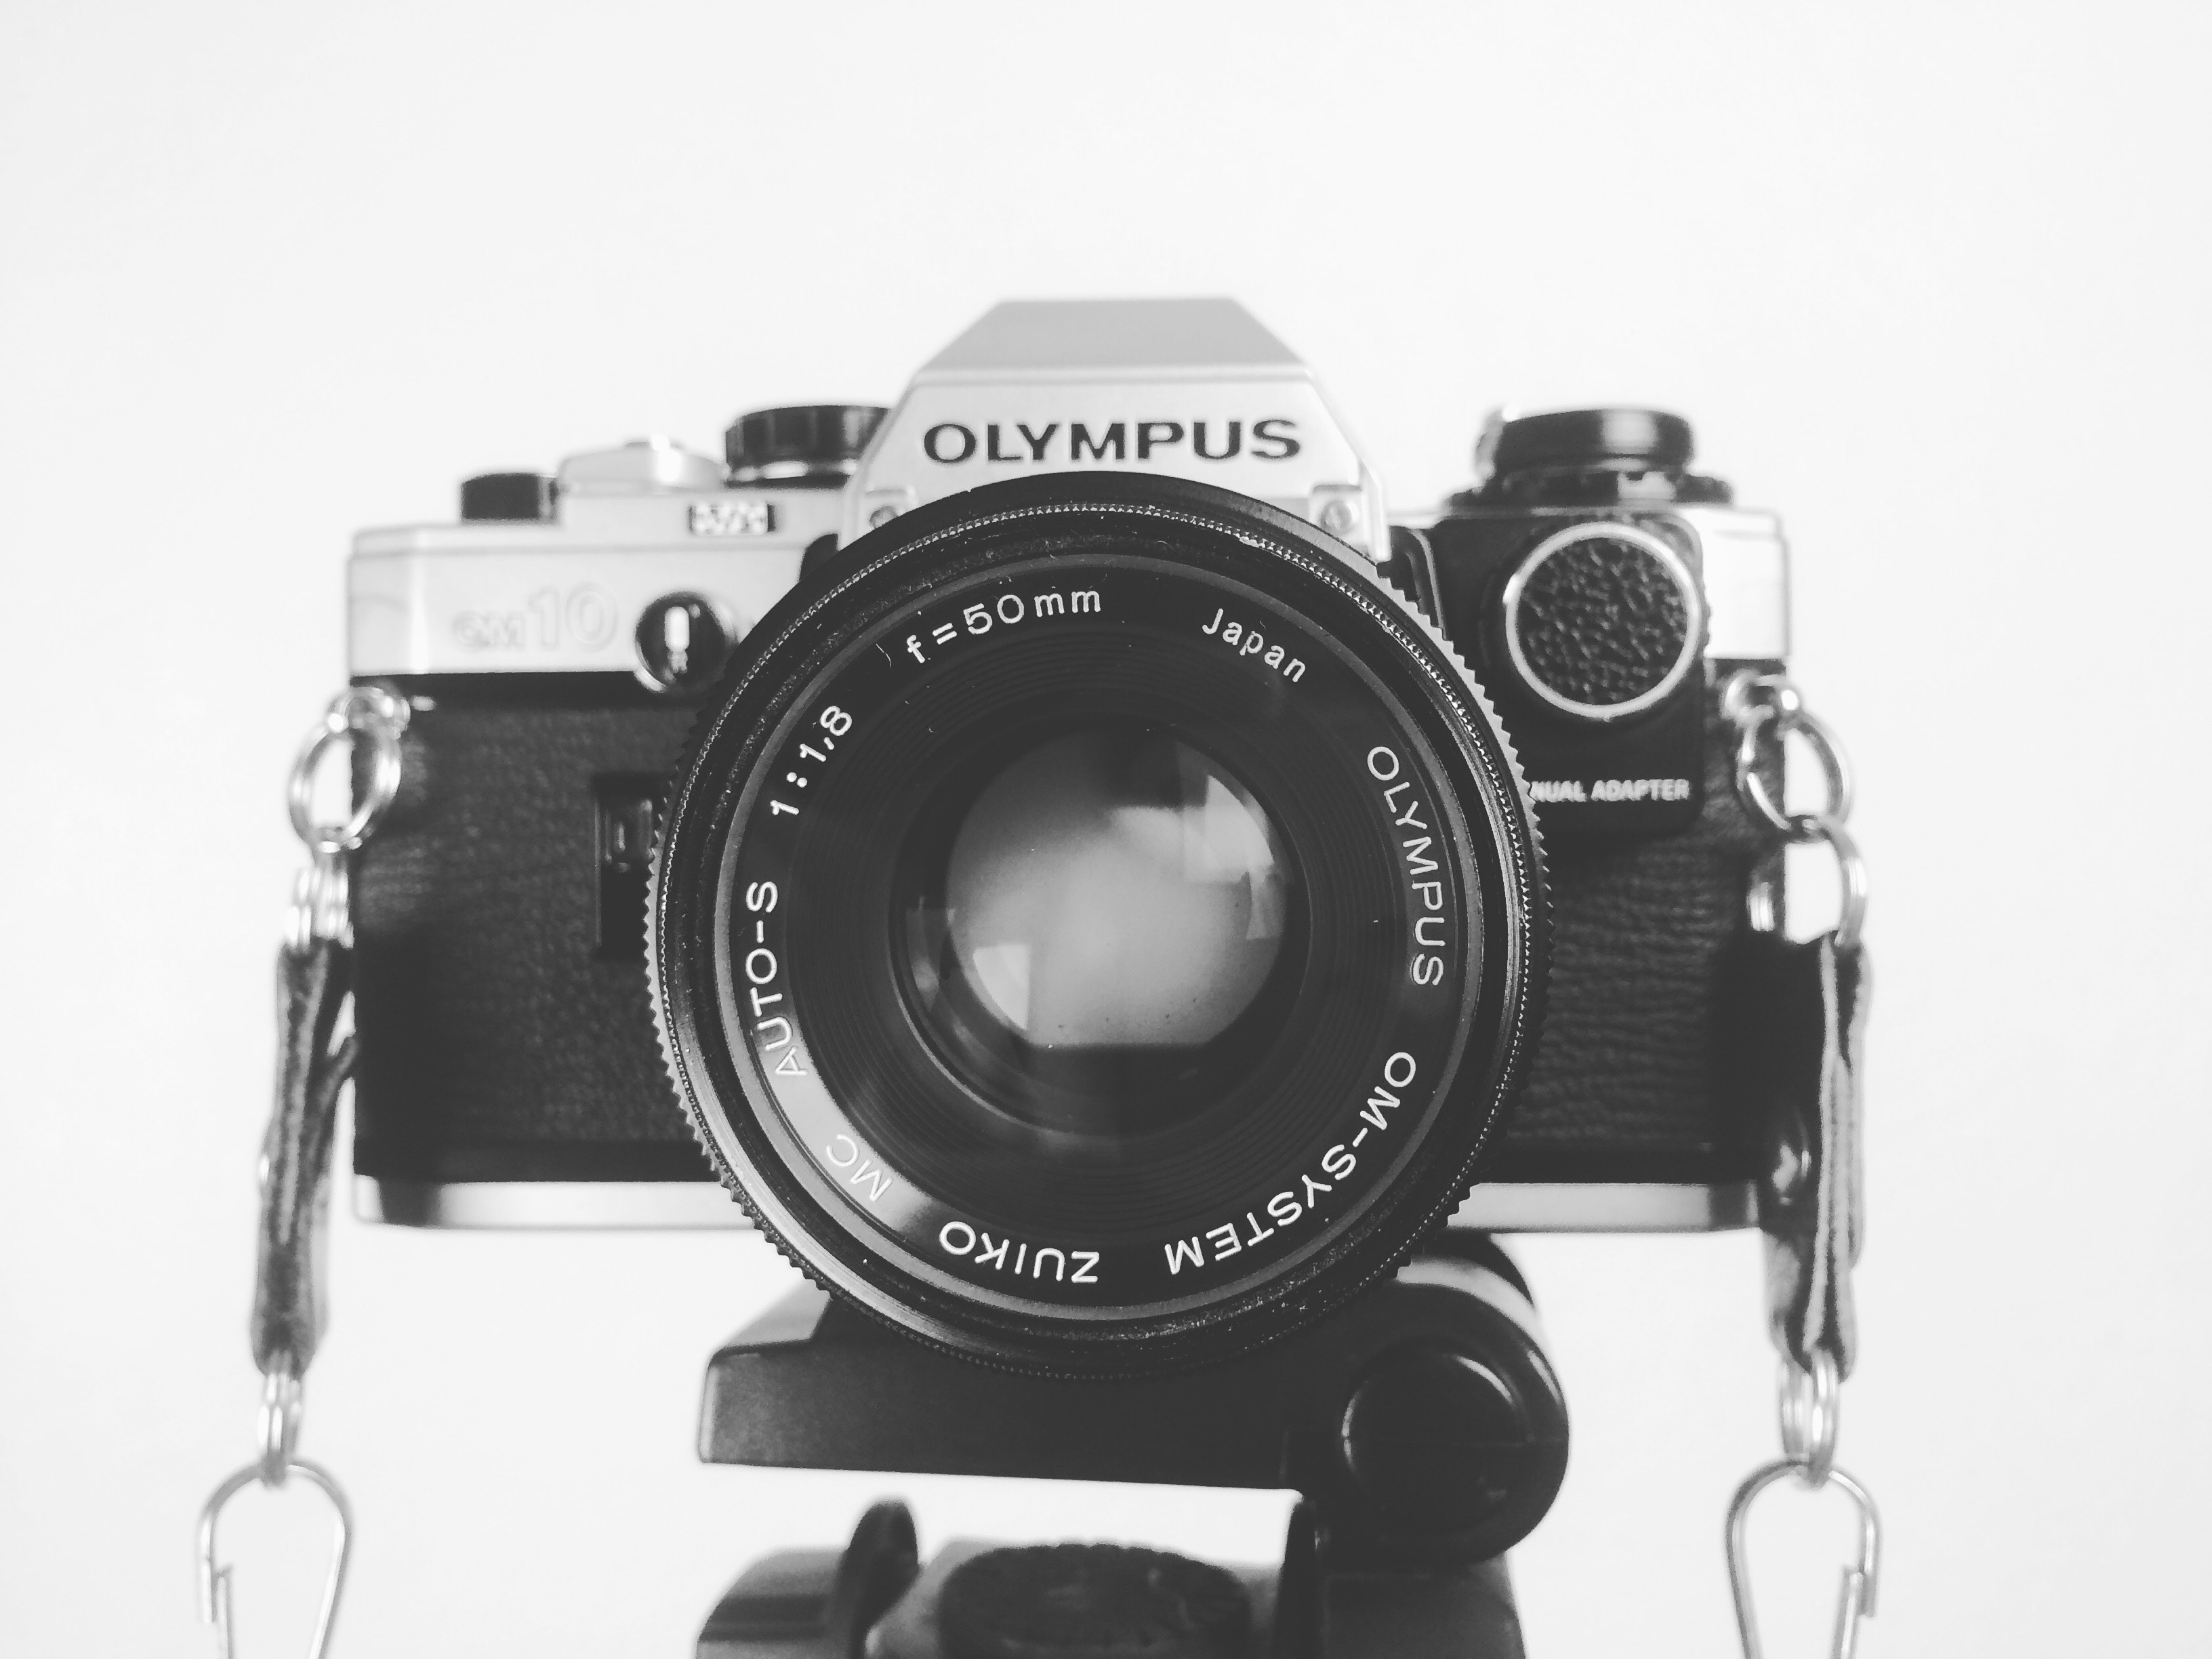 Black and grey olympus body camera photo